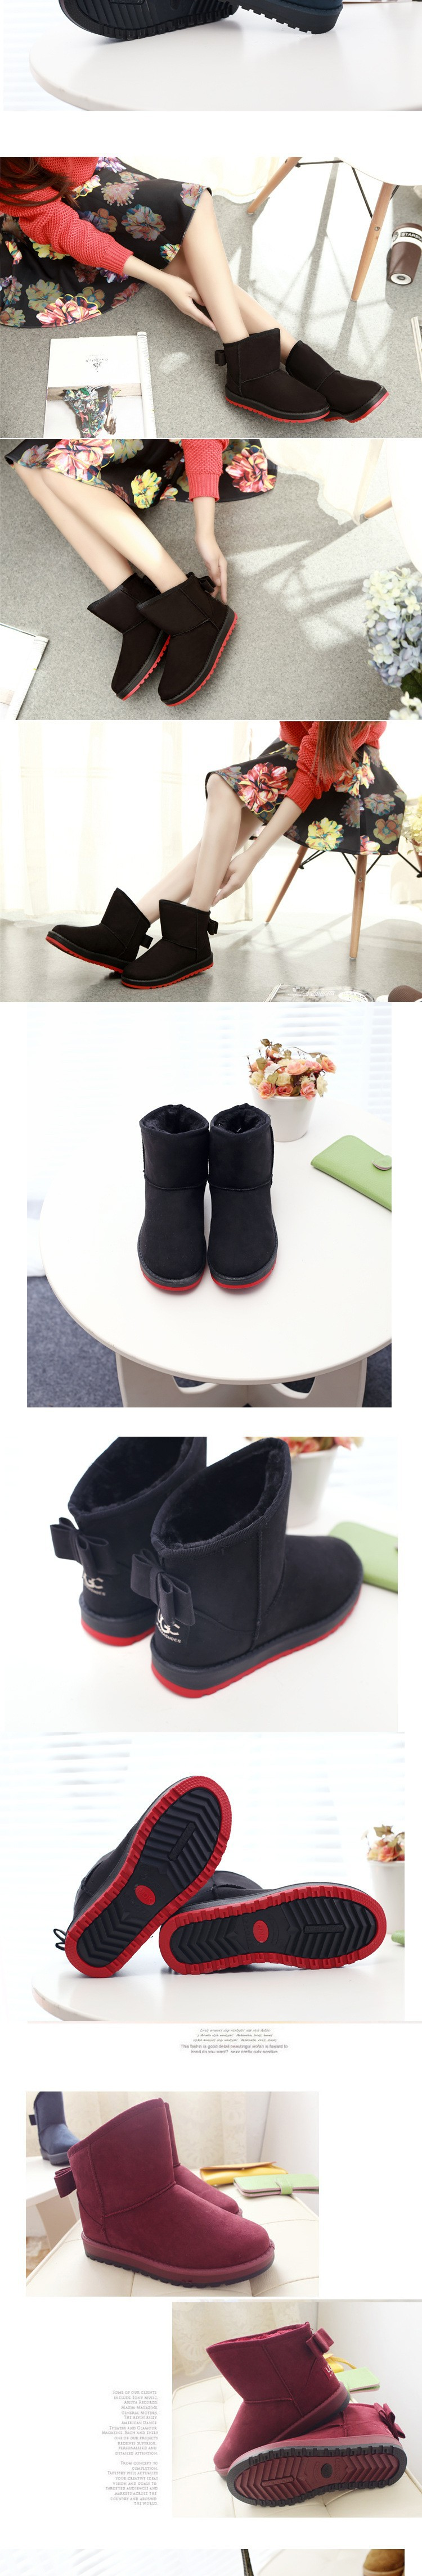 2015 Brand Women Winter Snow Boots Fashion Fur Boots high heels women Boots Shoes High Increased botas Mujer New Arrival B14 (4)